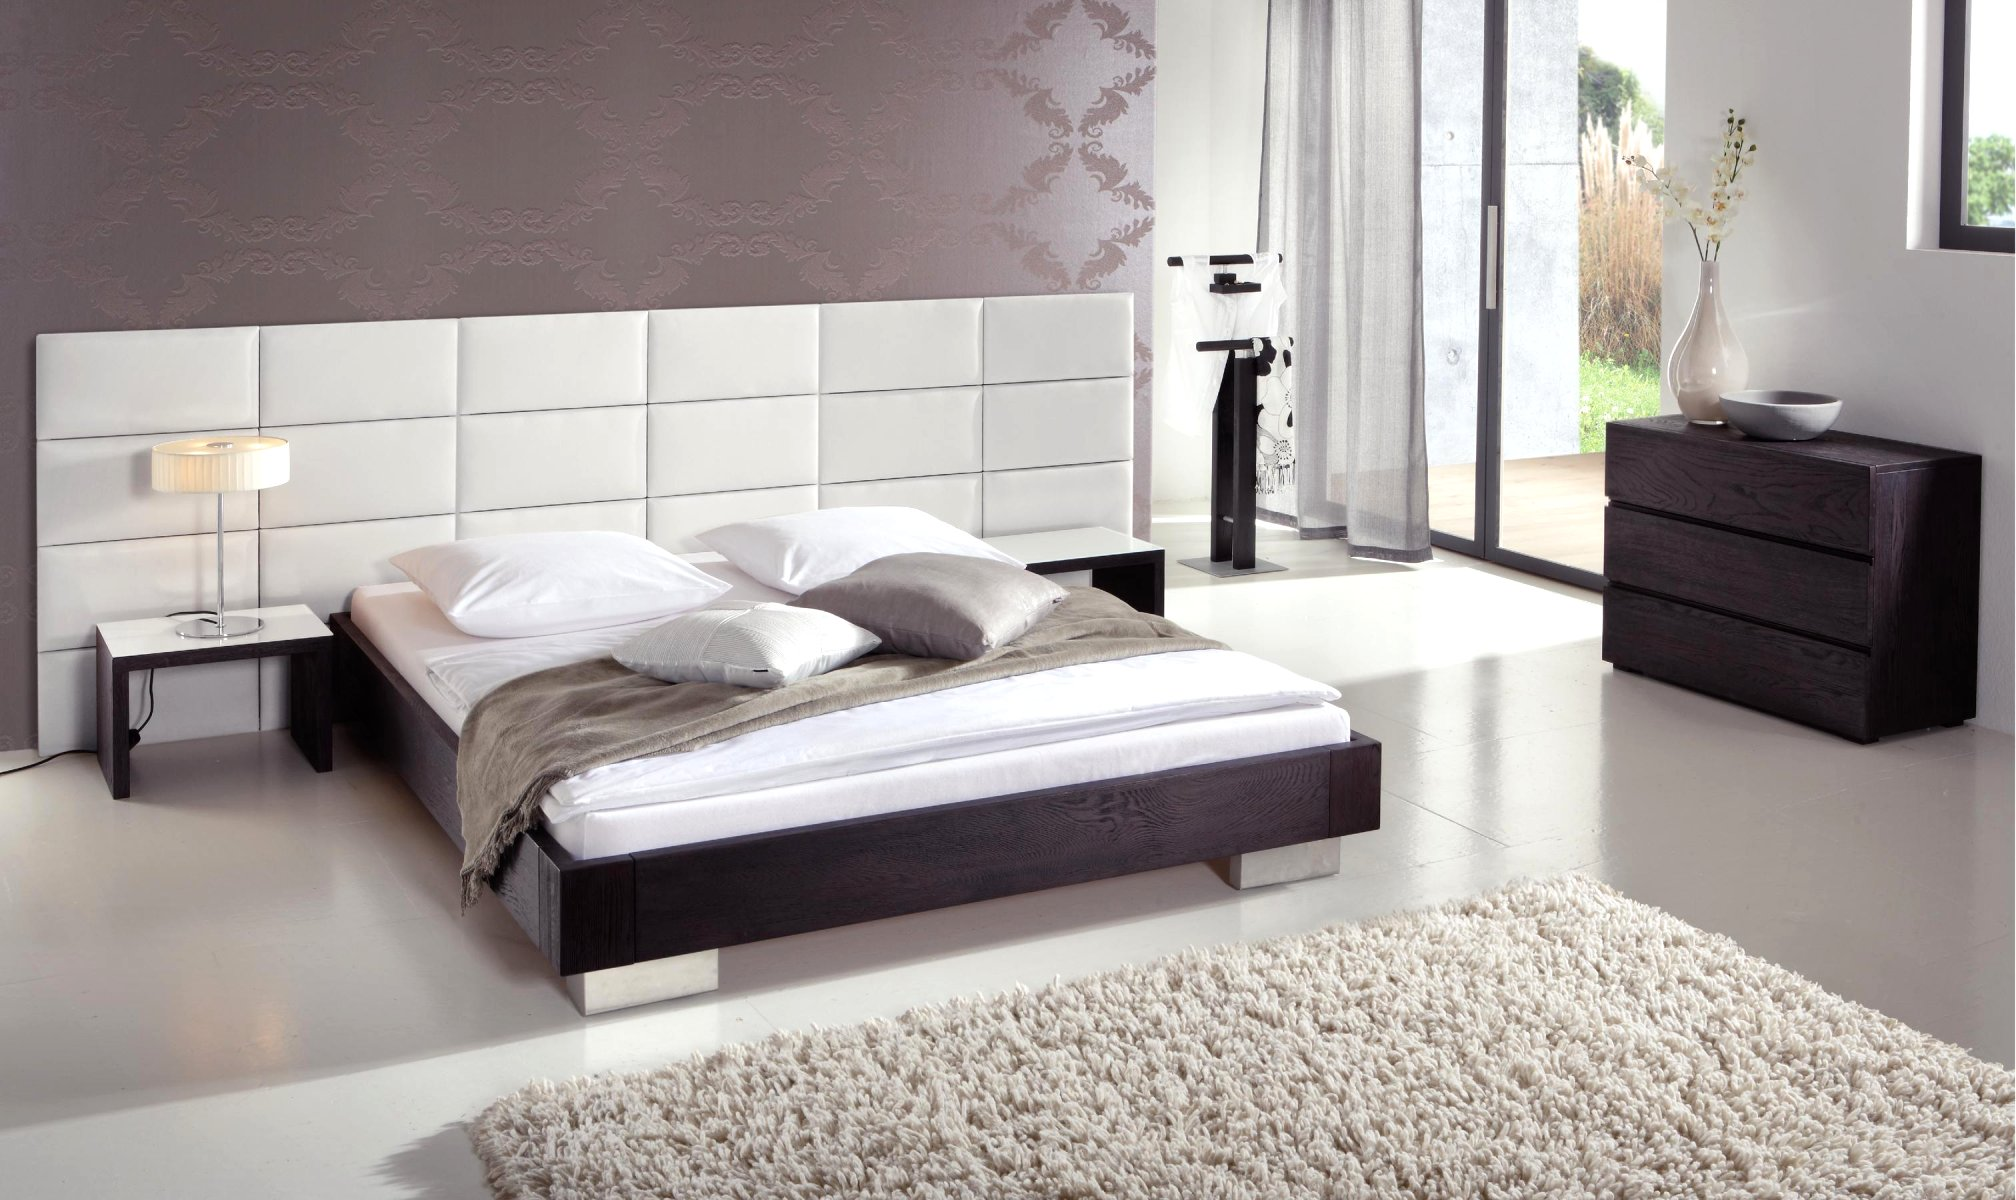 wasserbetten vinyl mit mesaamoll 2 weichmacher made in germnay. Black Bedroom Furniture Sets. Home Design Ideas